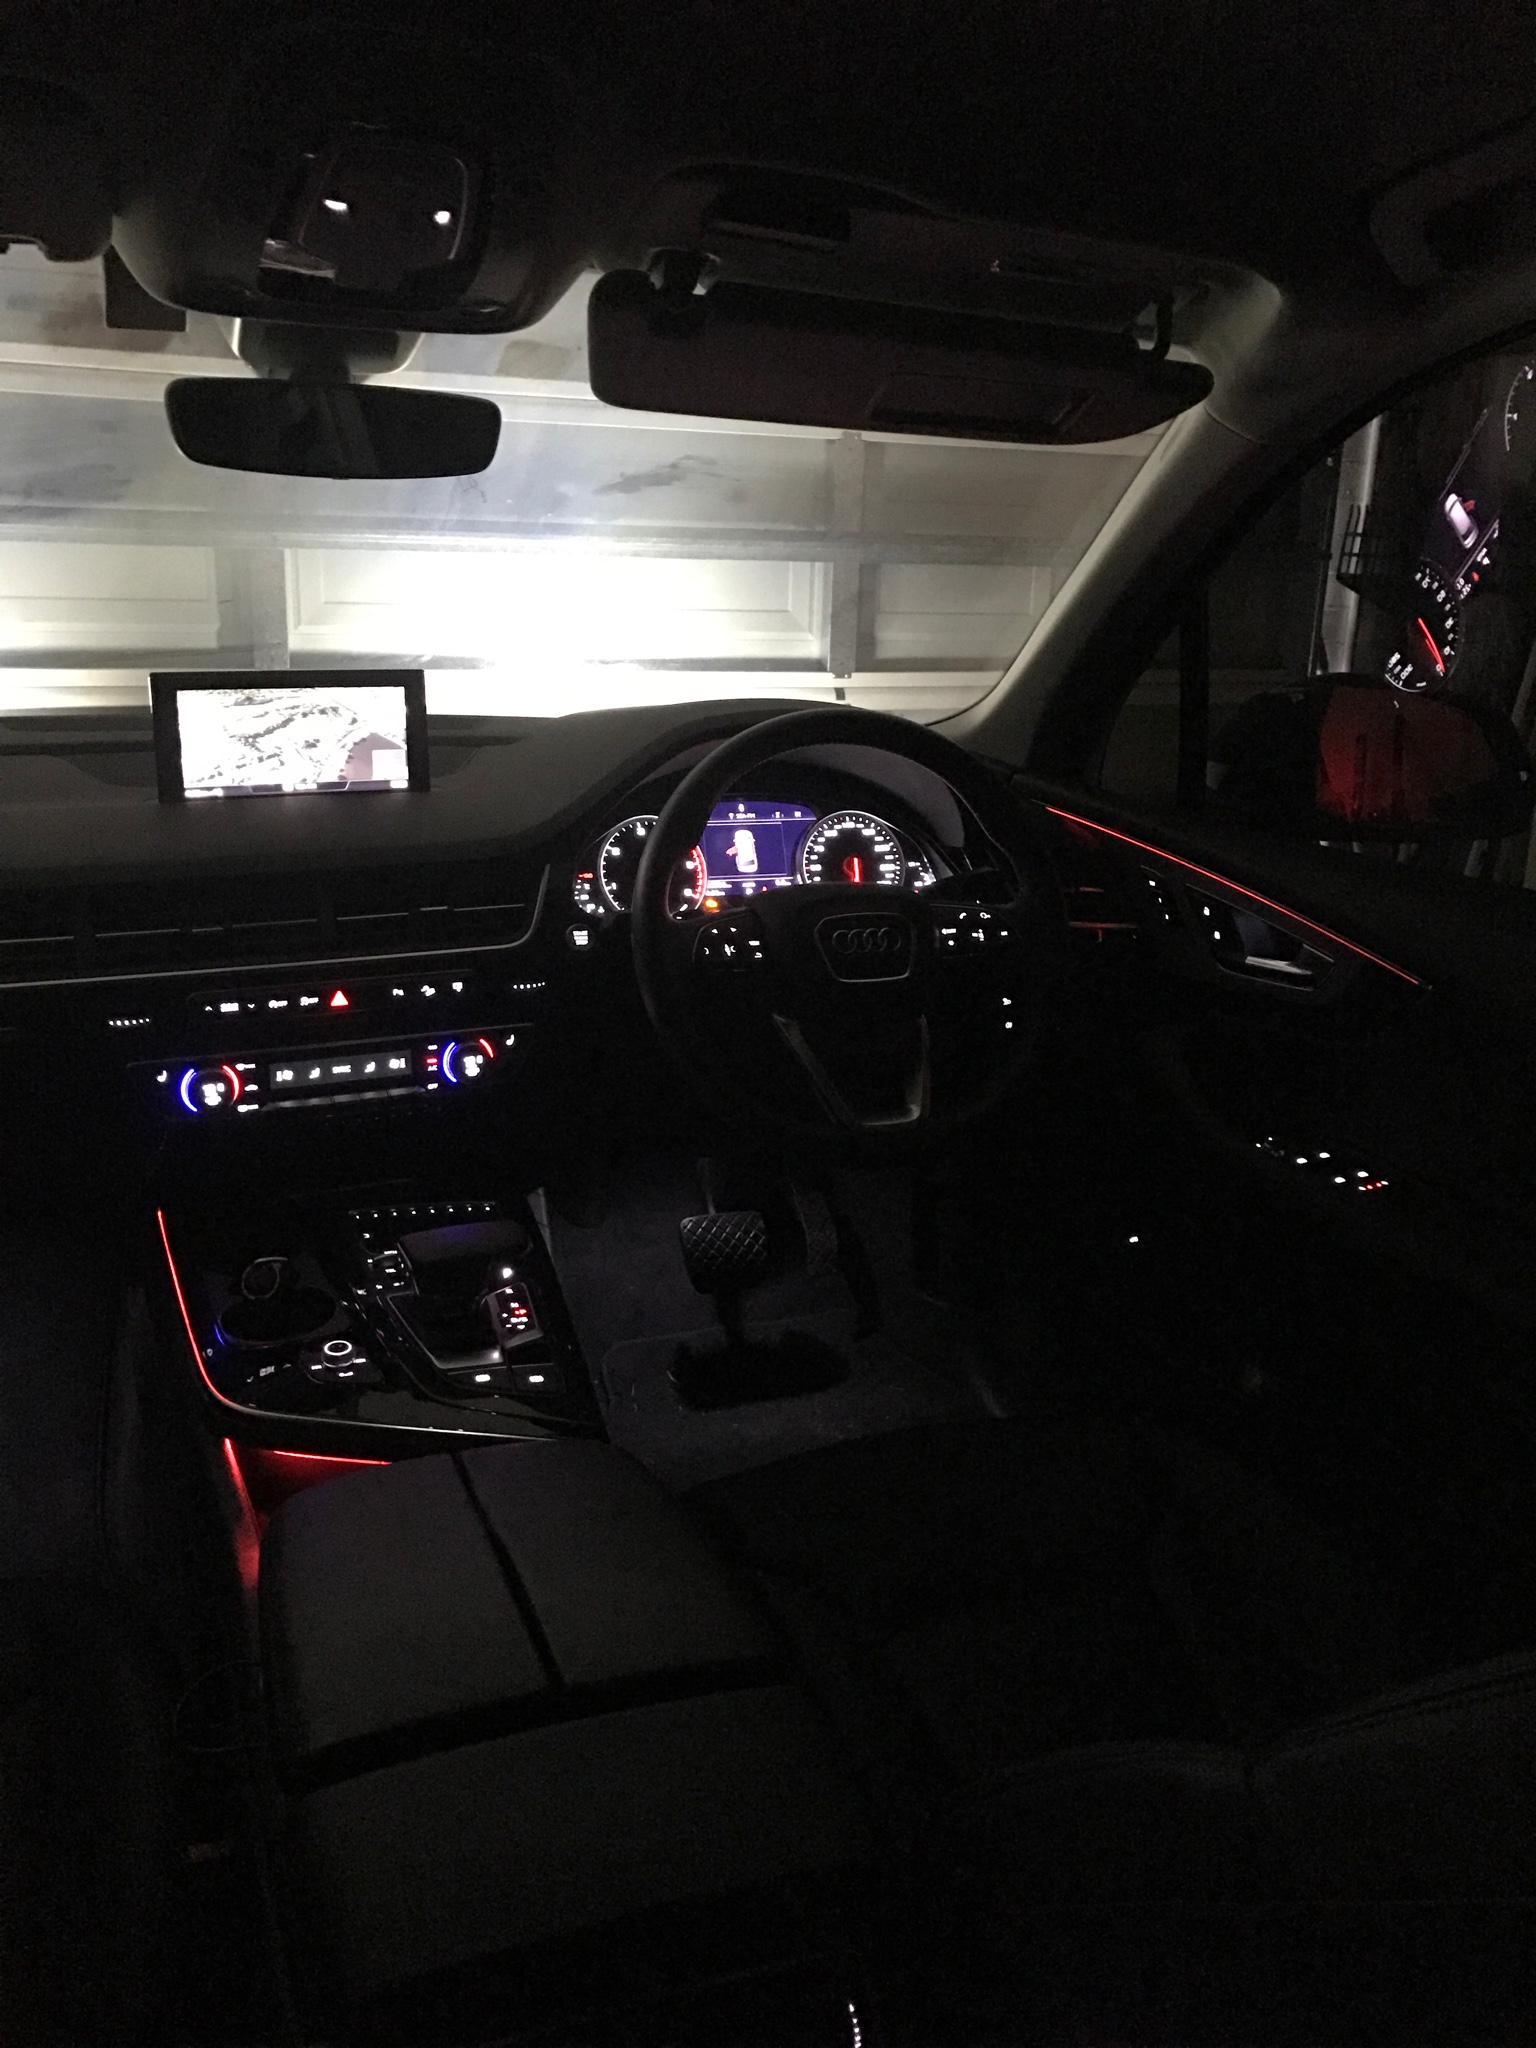 hight resolution of finally got every installed today and wired up next i will do the same to the dash air vents but this is not so easy so will be a job for another day